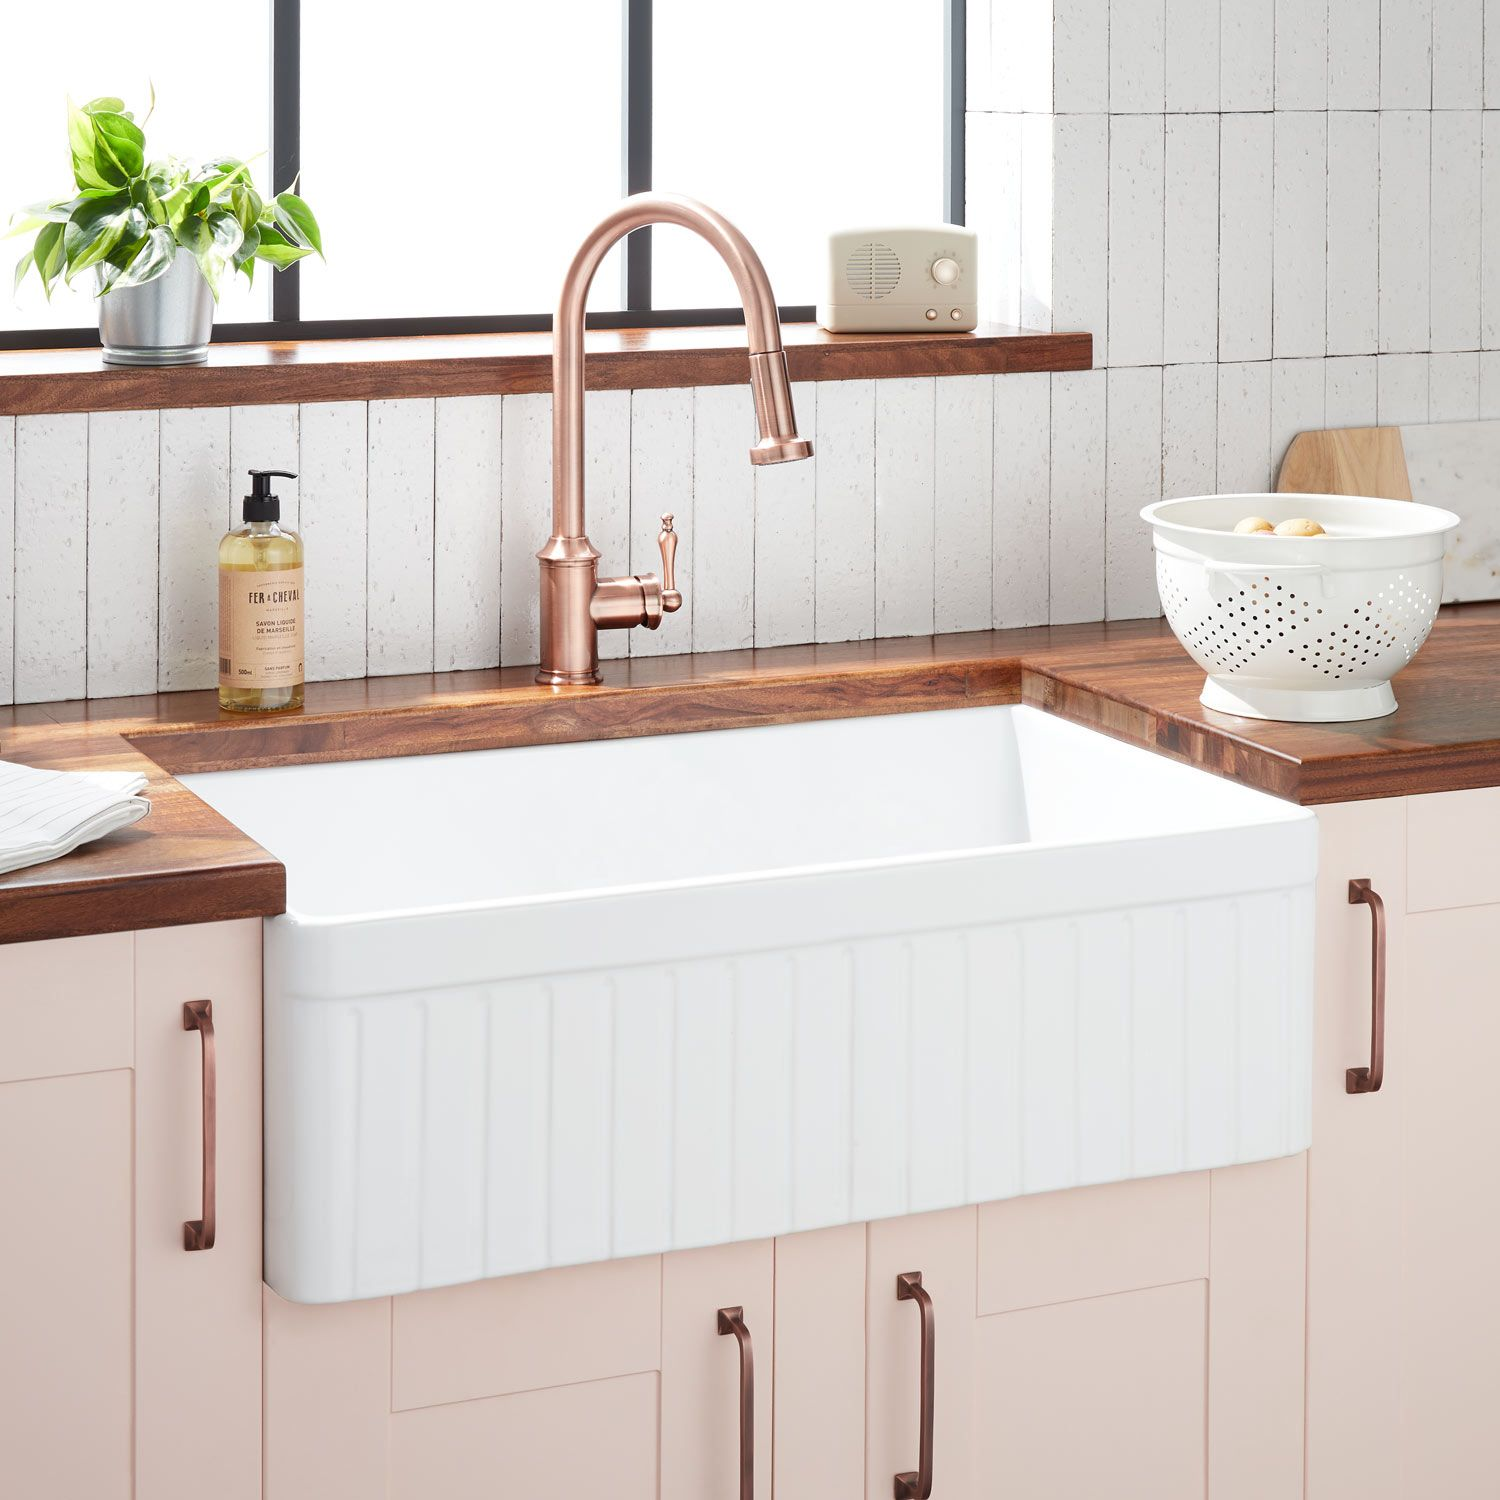 33 Curington Fireclay Farmhouse Sink In Fluted Apron In White